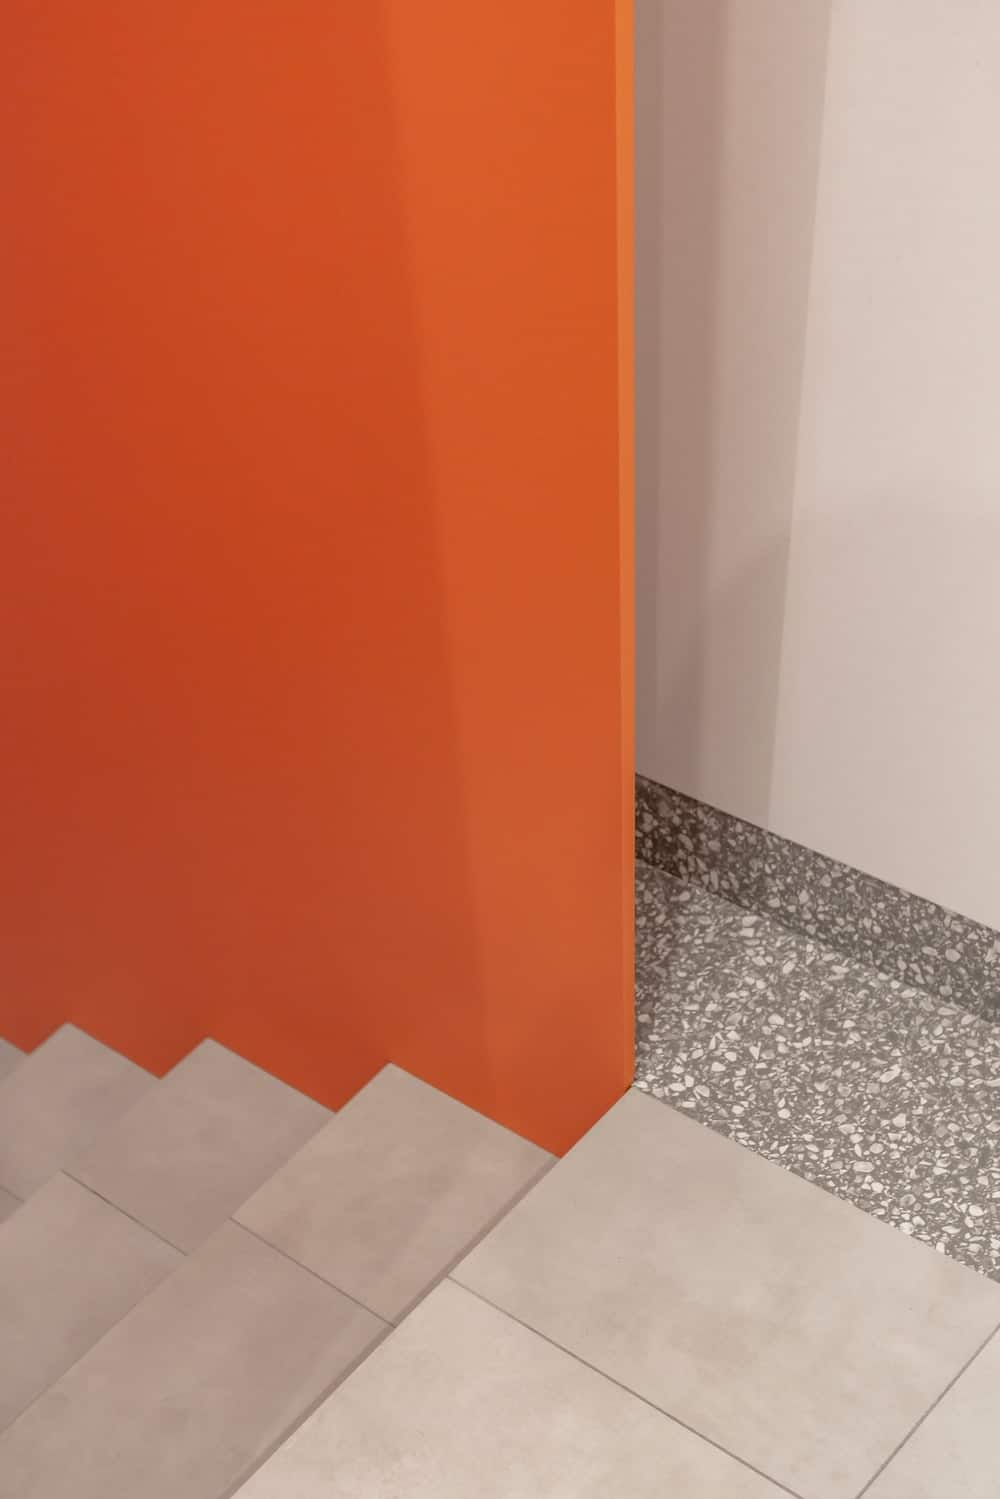 This is another view of the staircase with its light gray steps and floor contrasted by the bright orange wall on the side.